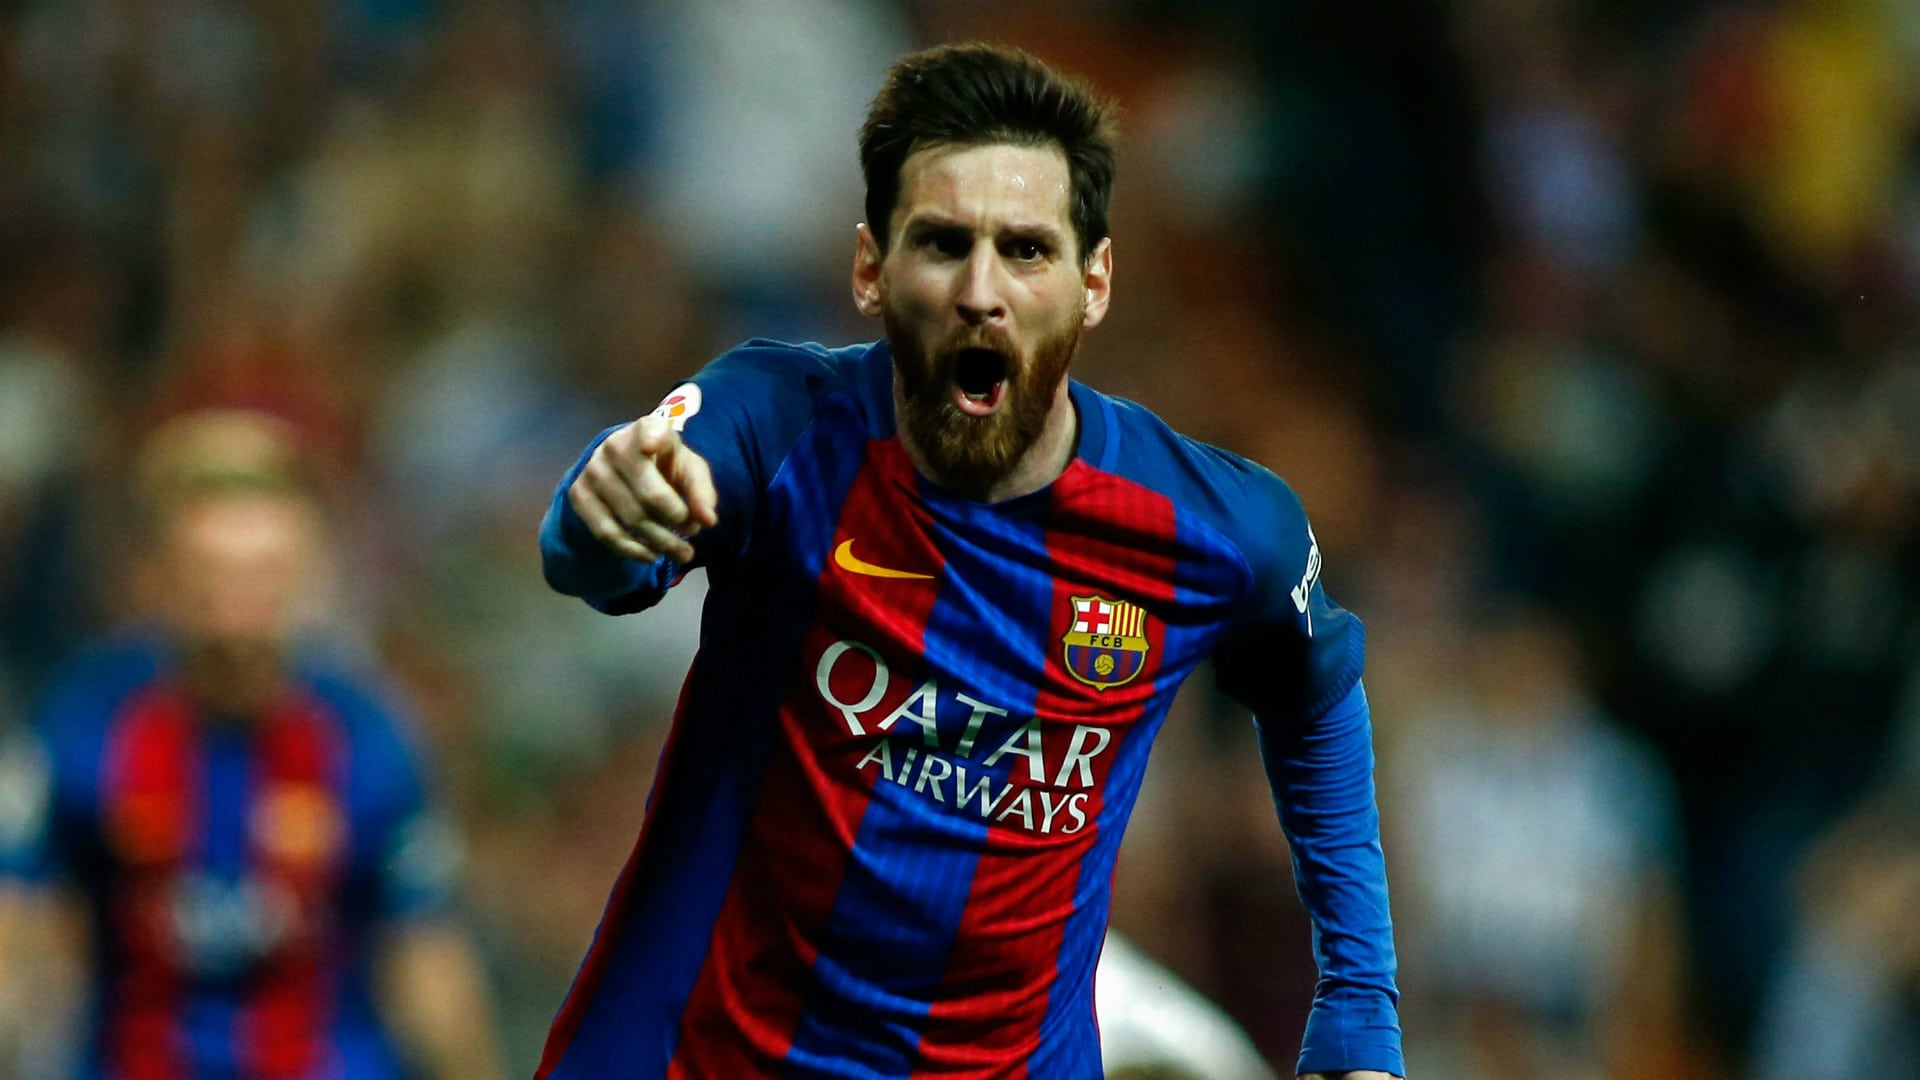 Highest paid footballers: who's the richest?